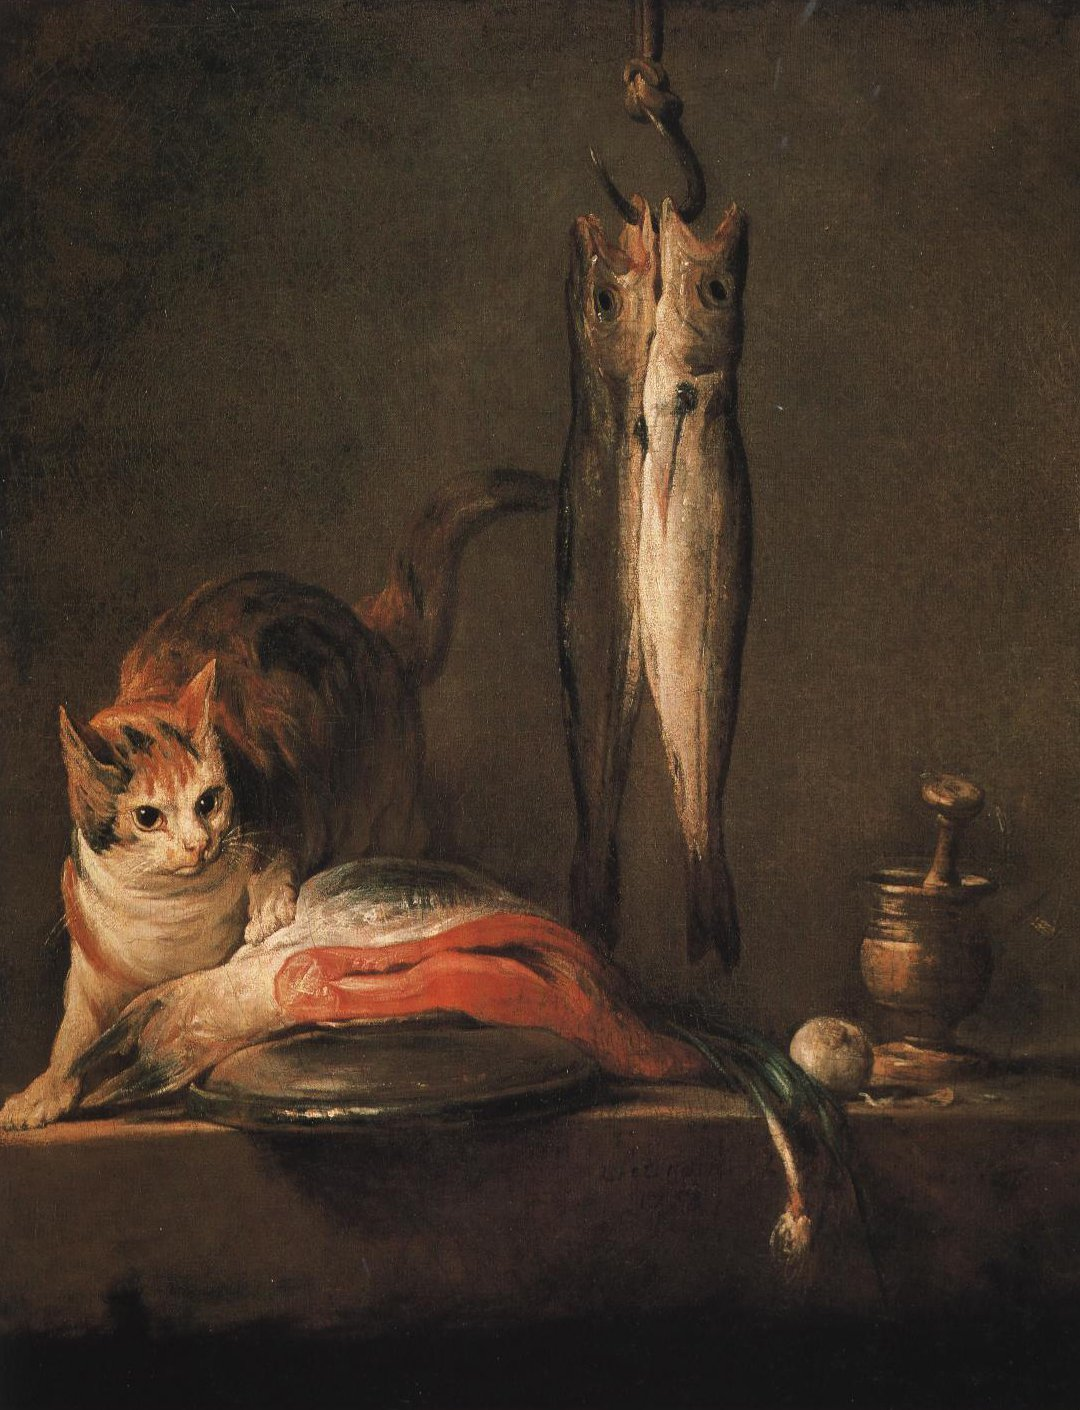 Still Life With Cat And Fish Le Larron En Bonne Fortune | Jean Baptist Simeon Chardin | Oil Painting